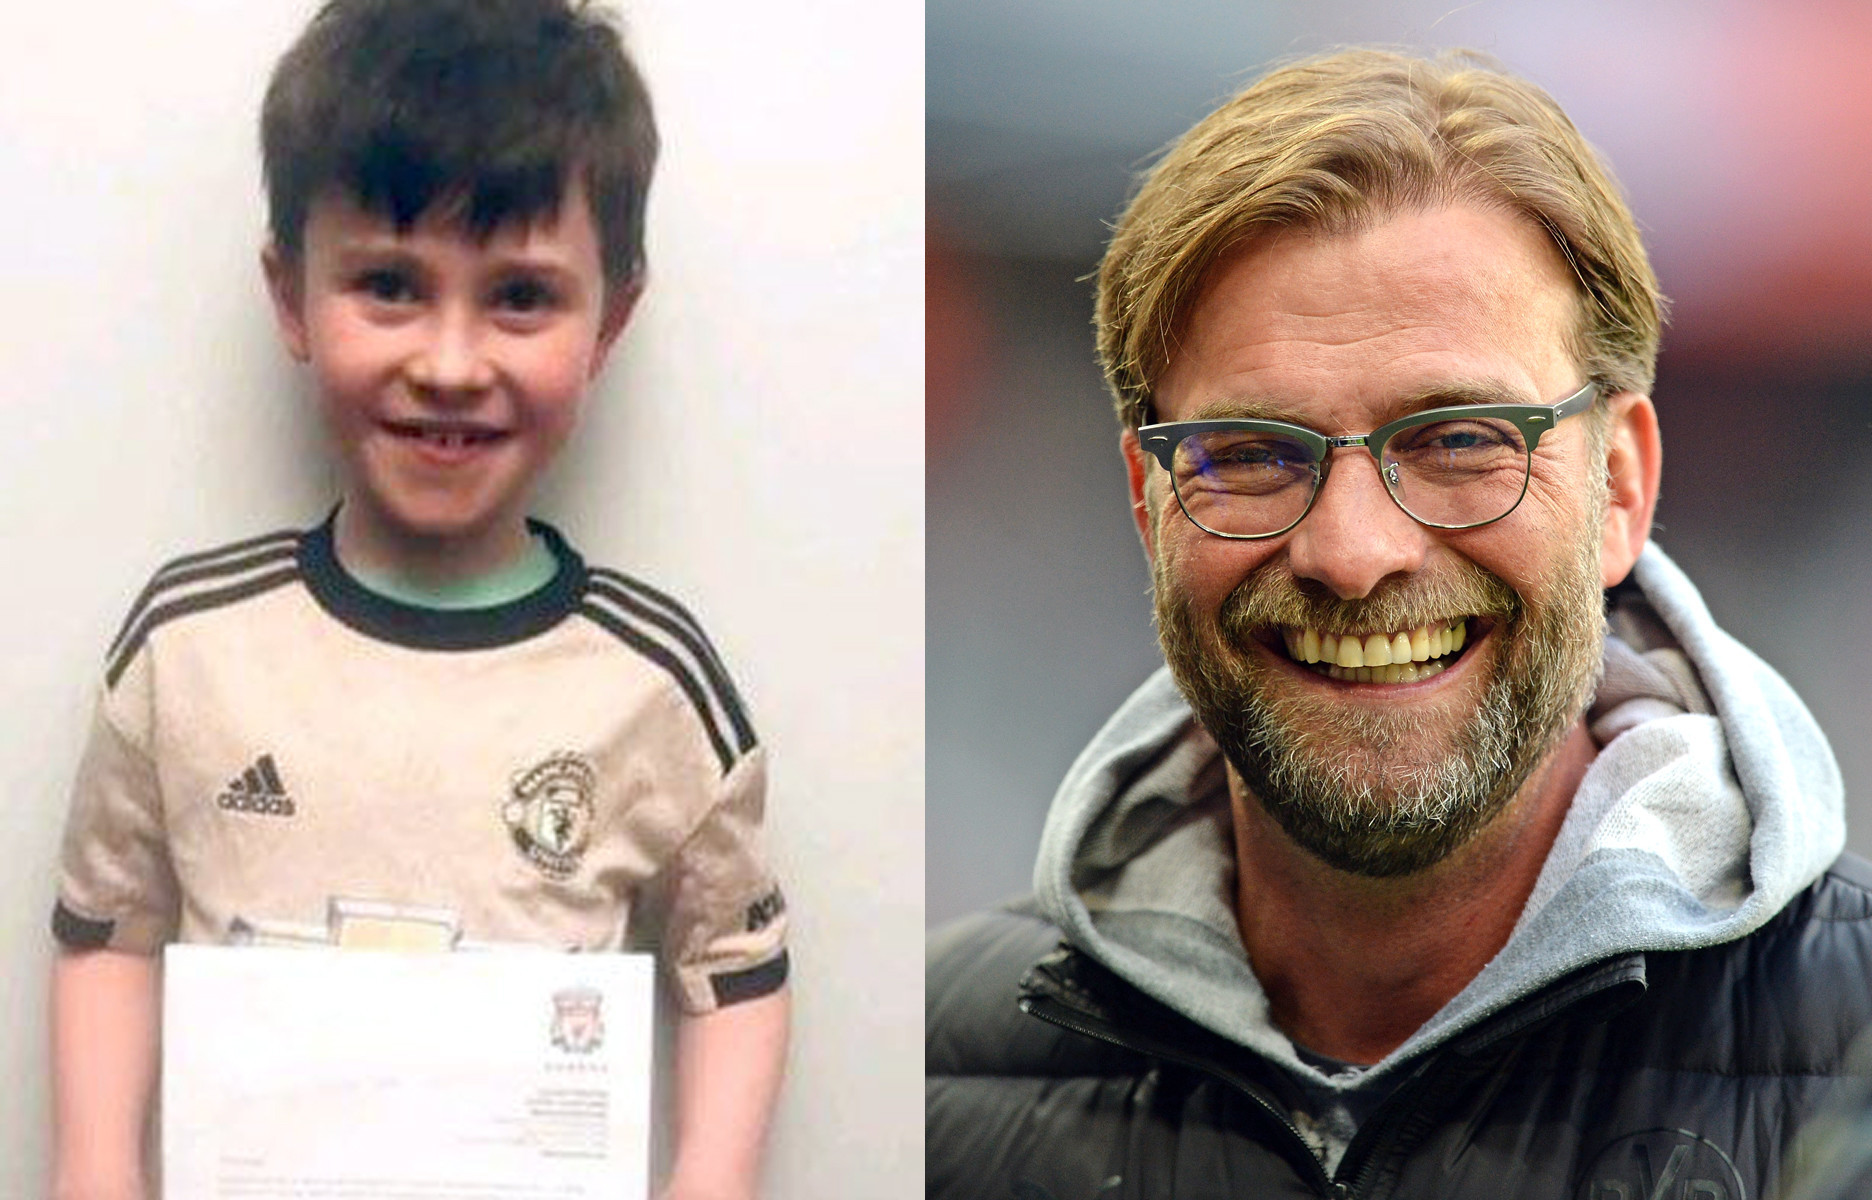 10-year-old soccer fan writes letter asking Liverpool coach to lose a match — and gets a response